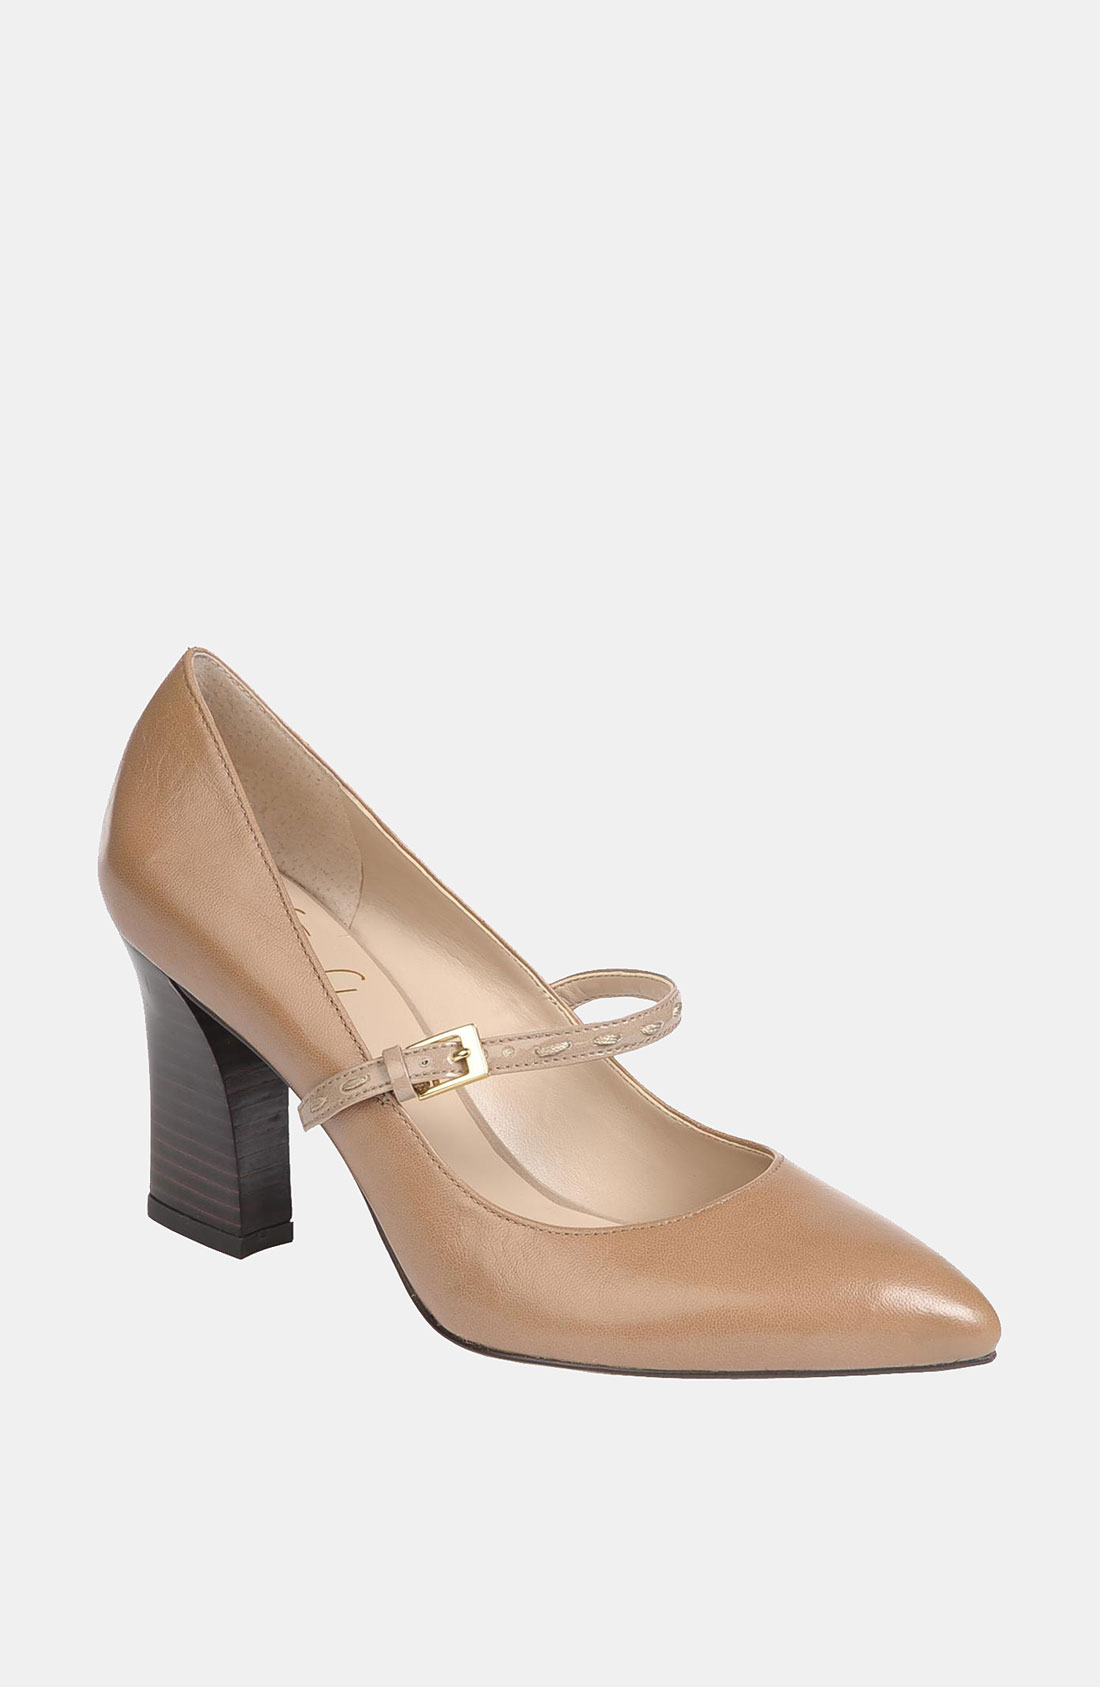 Franco Sarto Instinct Mary Jane Pump In Beige Cool Taupe